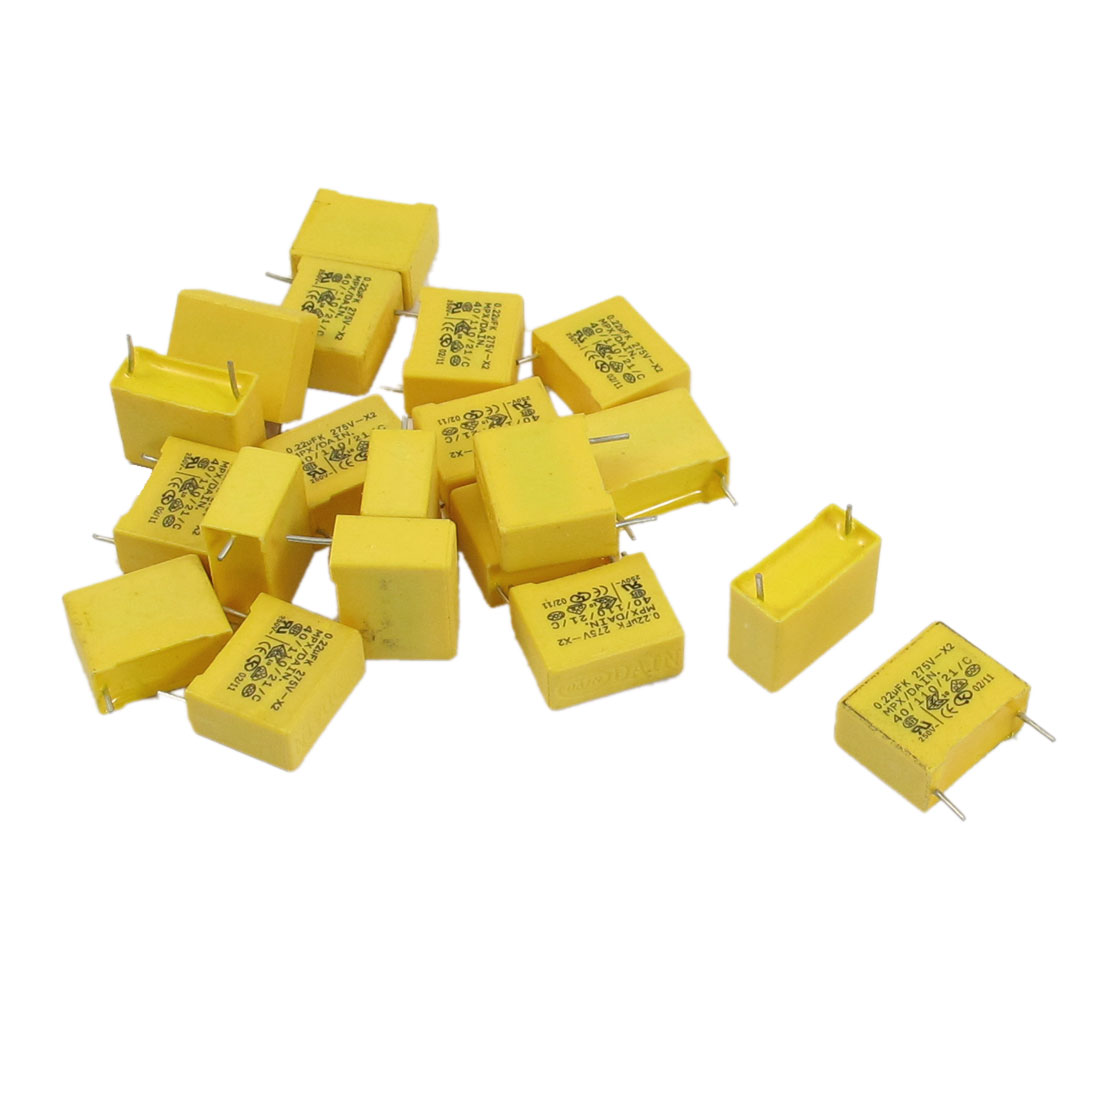 20 x 0.22uF AC 275V 10% Tolerance X2 Safety Polypropylene Film Capacitors